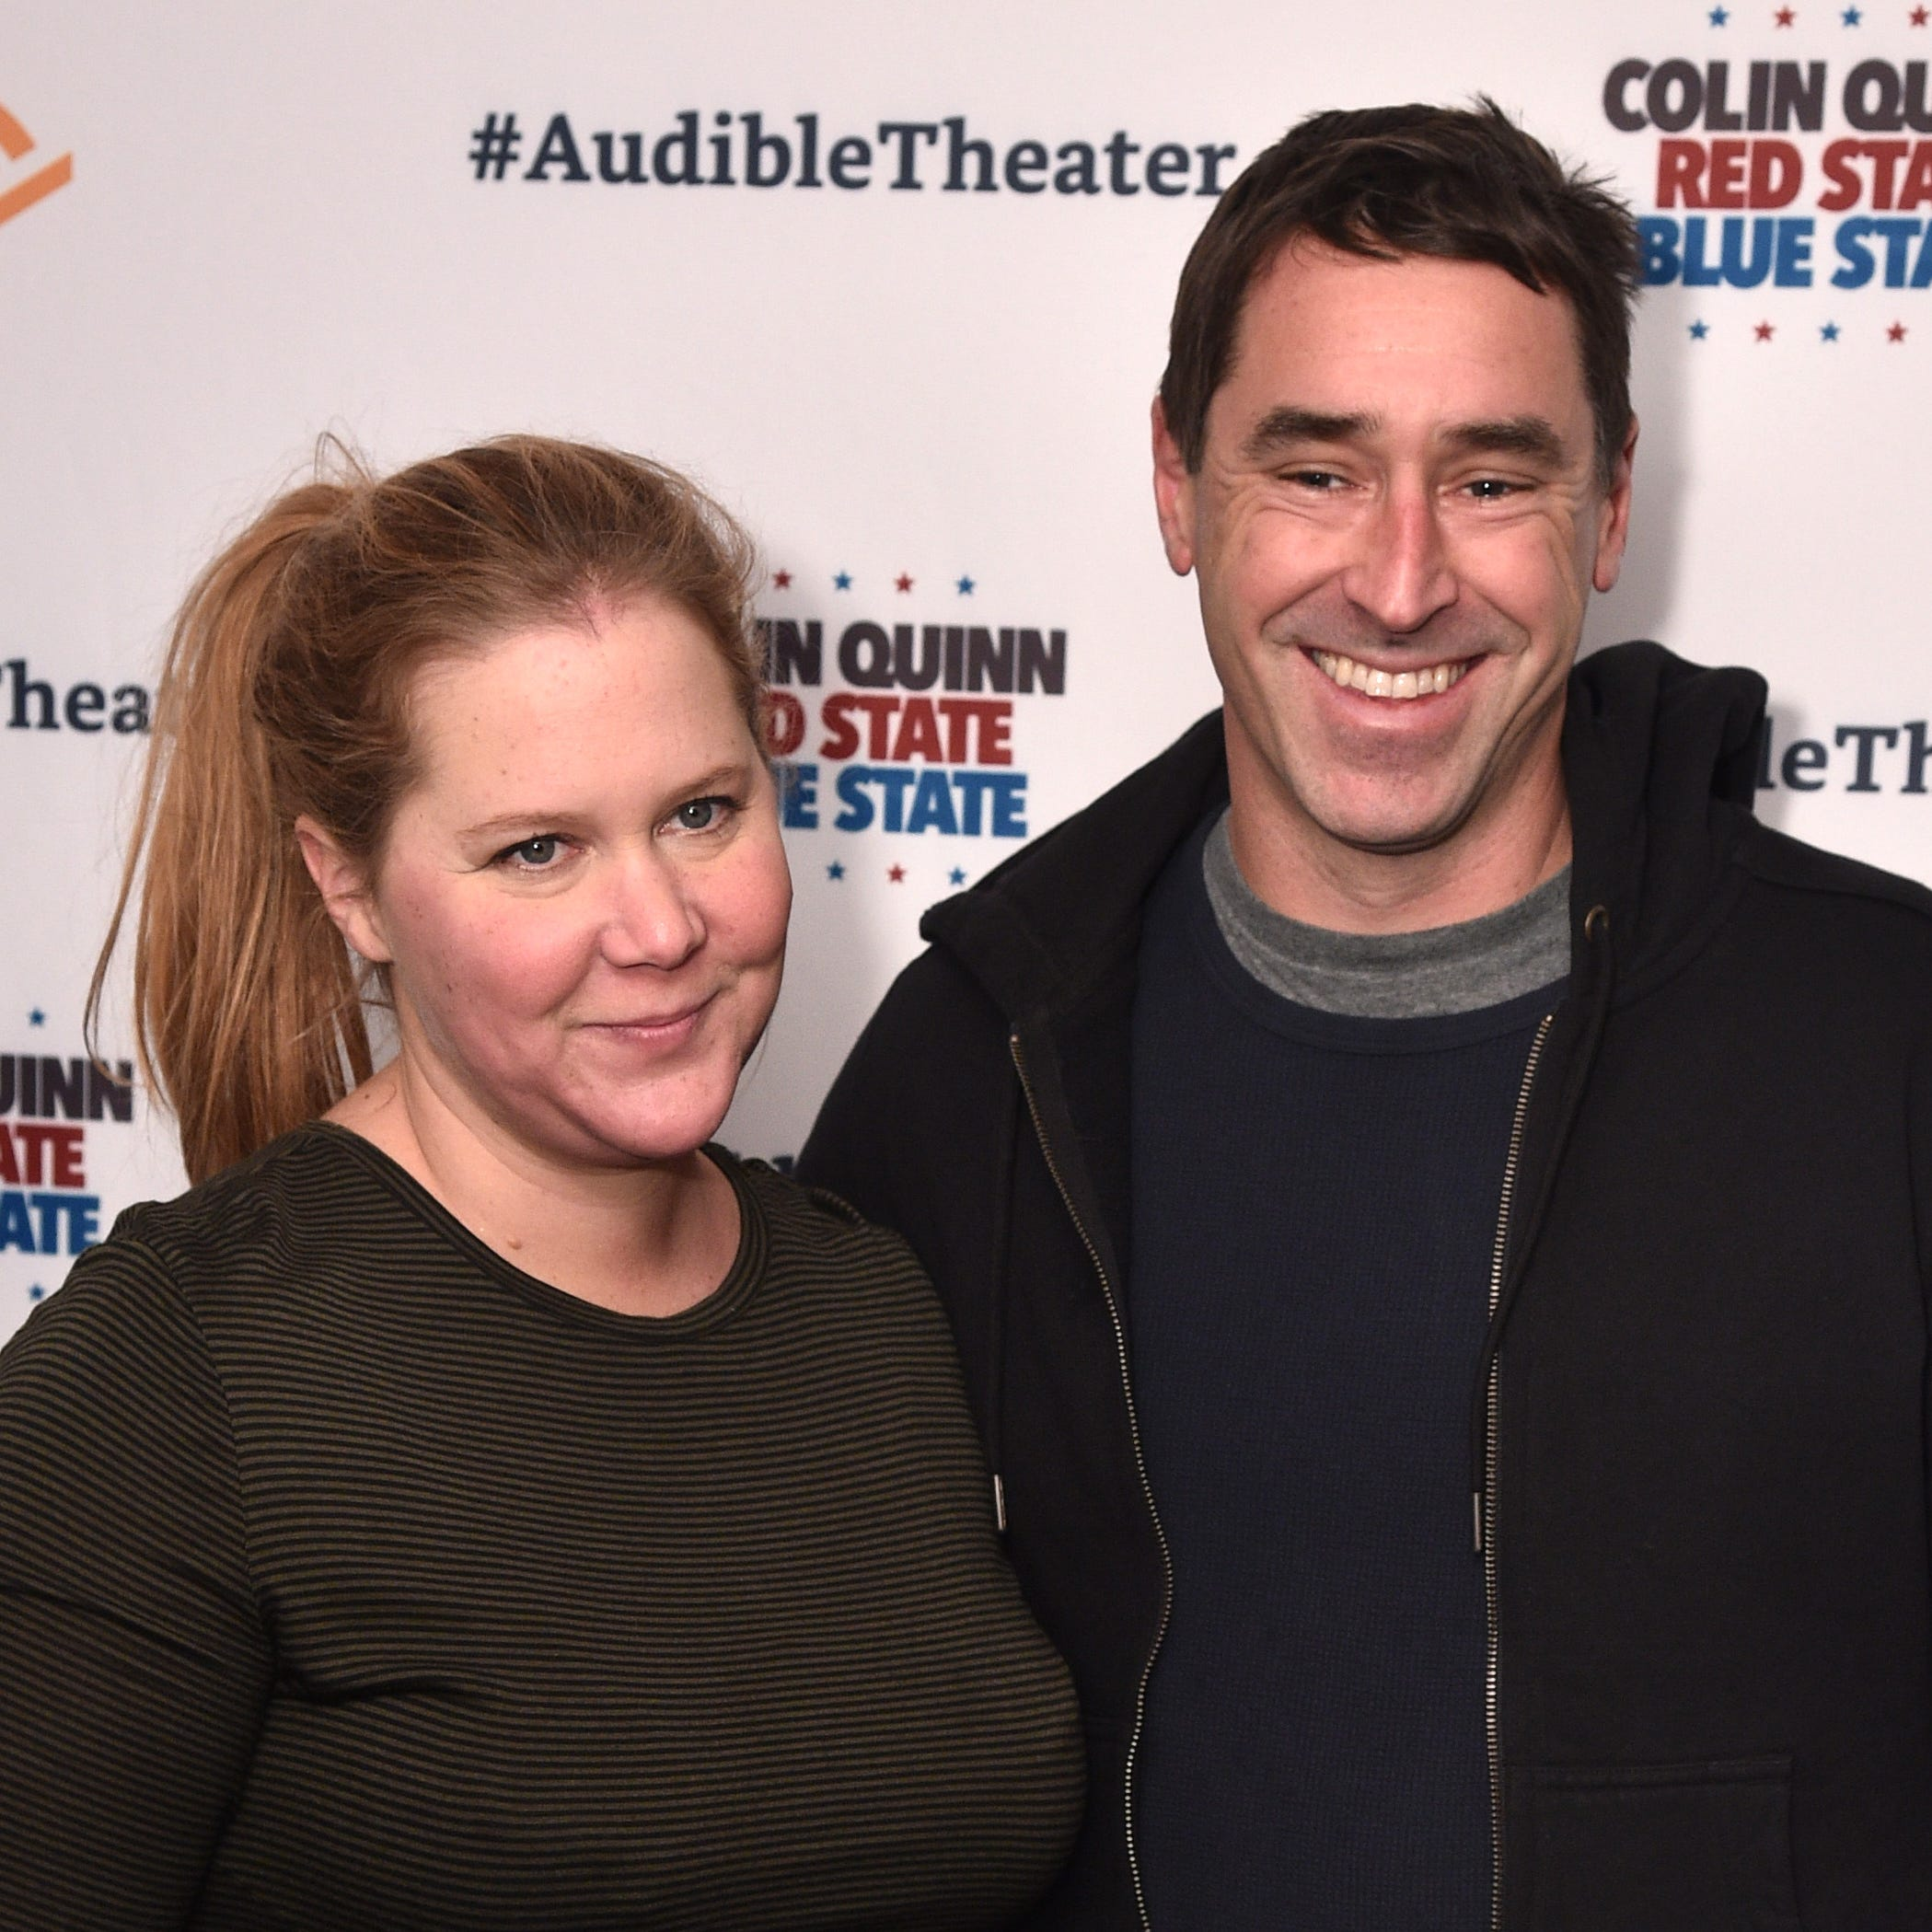 "Amy Schumer and Chris Fischer attend the Opening Night for Colin Quinn's ""Red State Blue State"" on Jan. 22, 2019 in New York City."